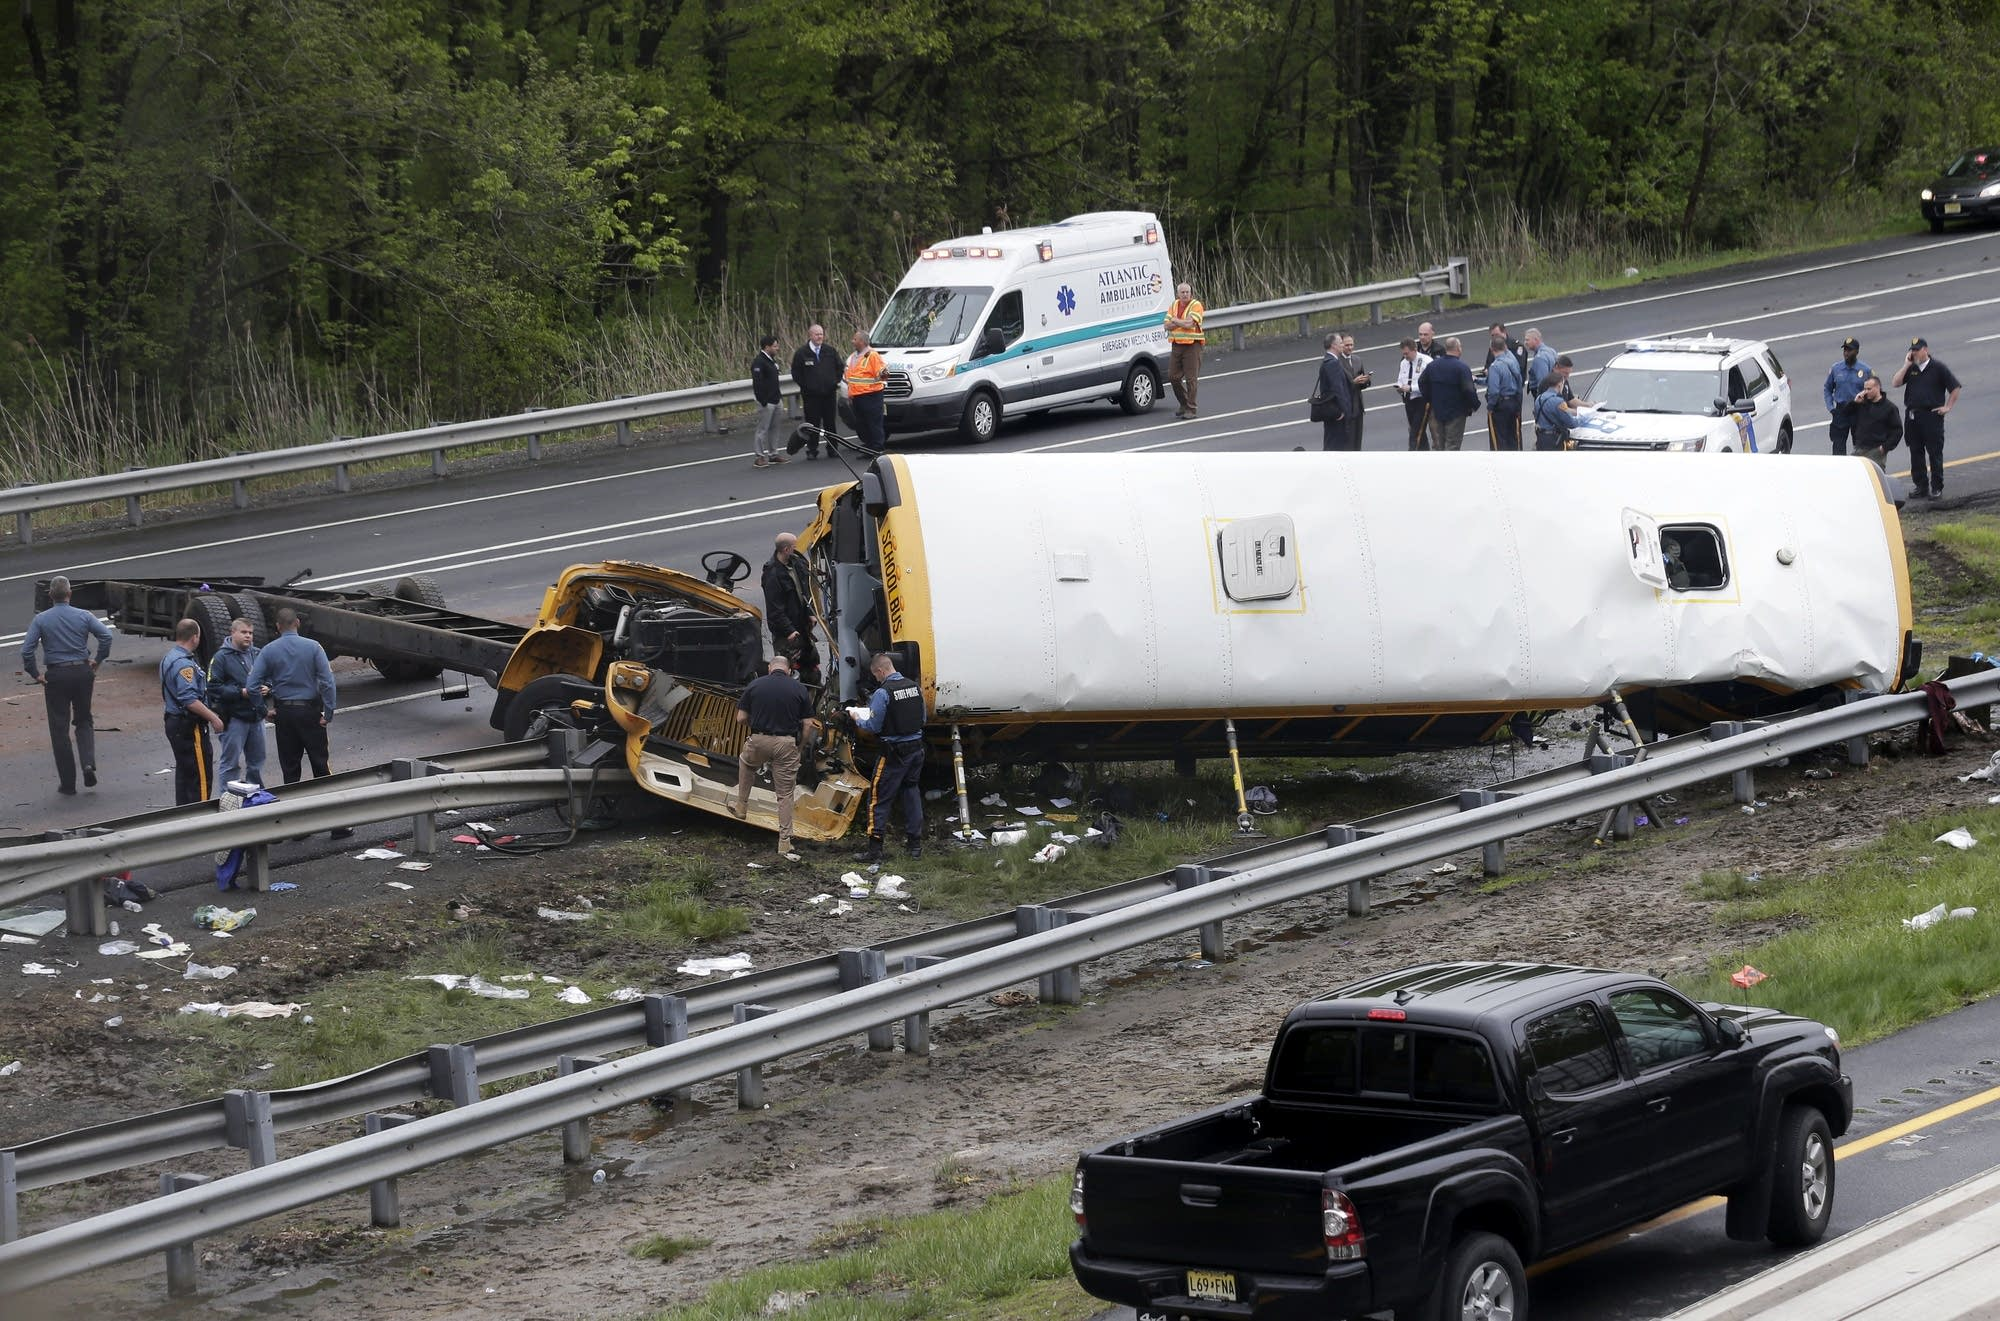 Emergency personnel work at the scene of a school bus, dump truck collision